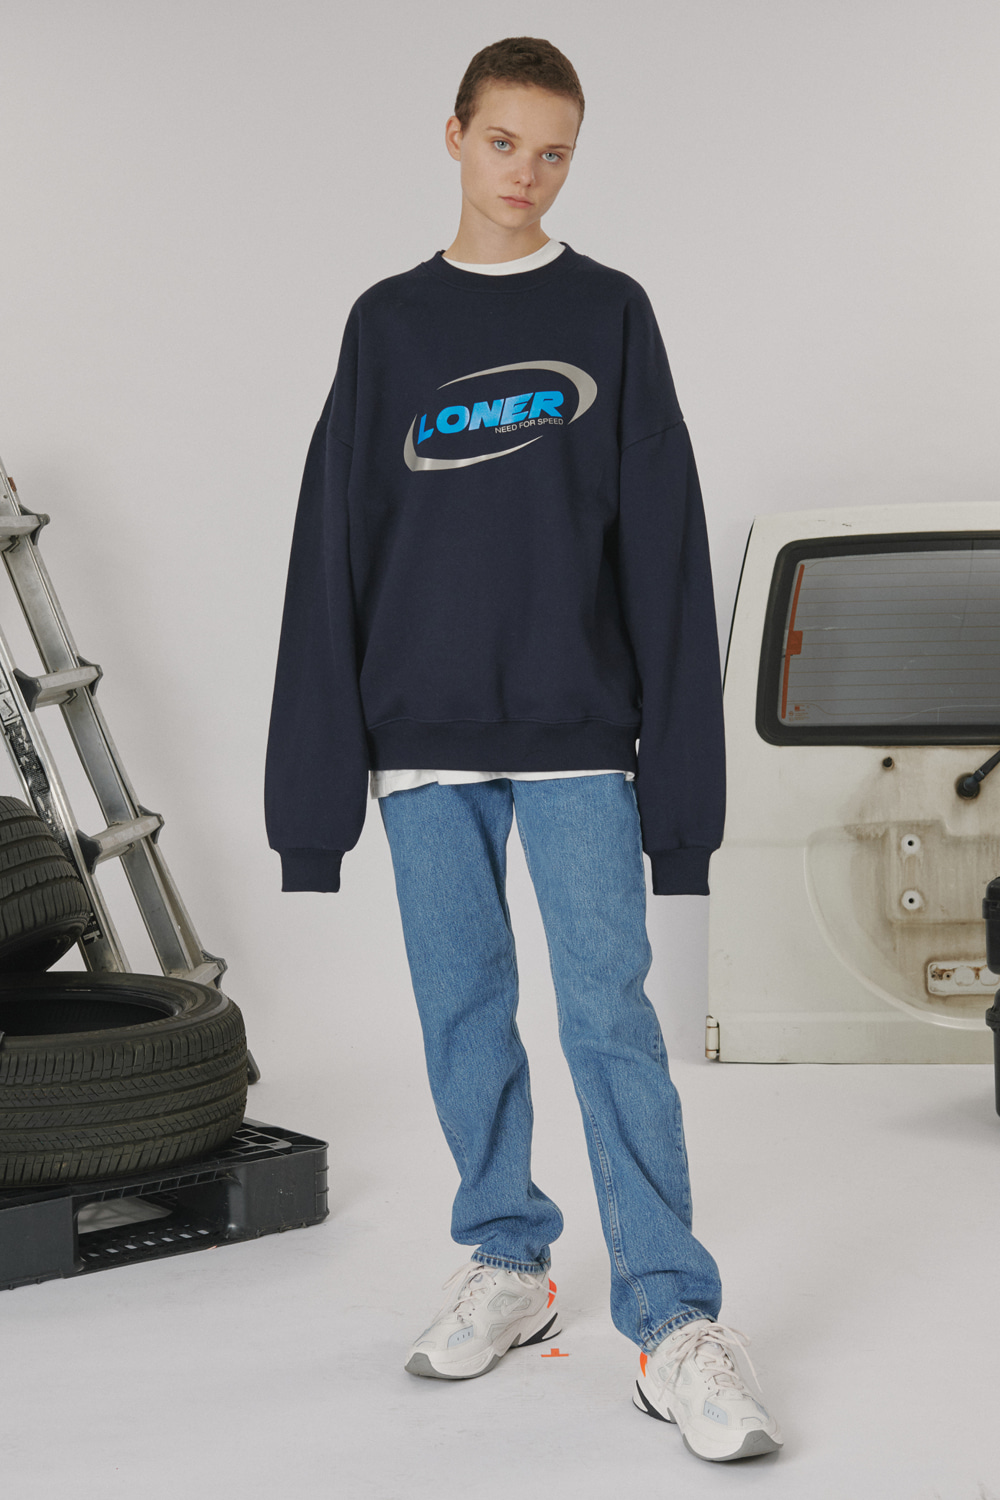 [가을맞이 세일] Circle racer logo sweatshirt - Navy (기간한정 11.15 - 11.21)